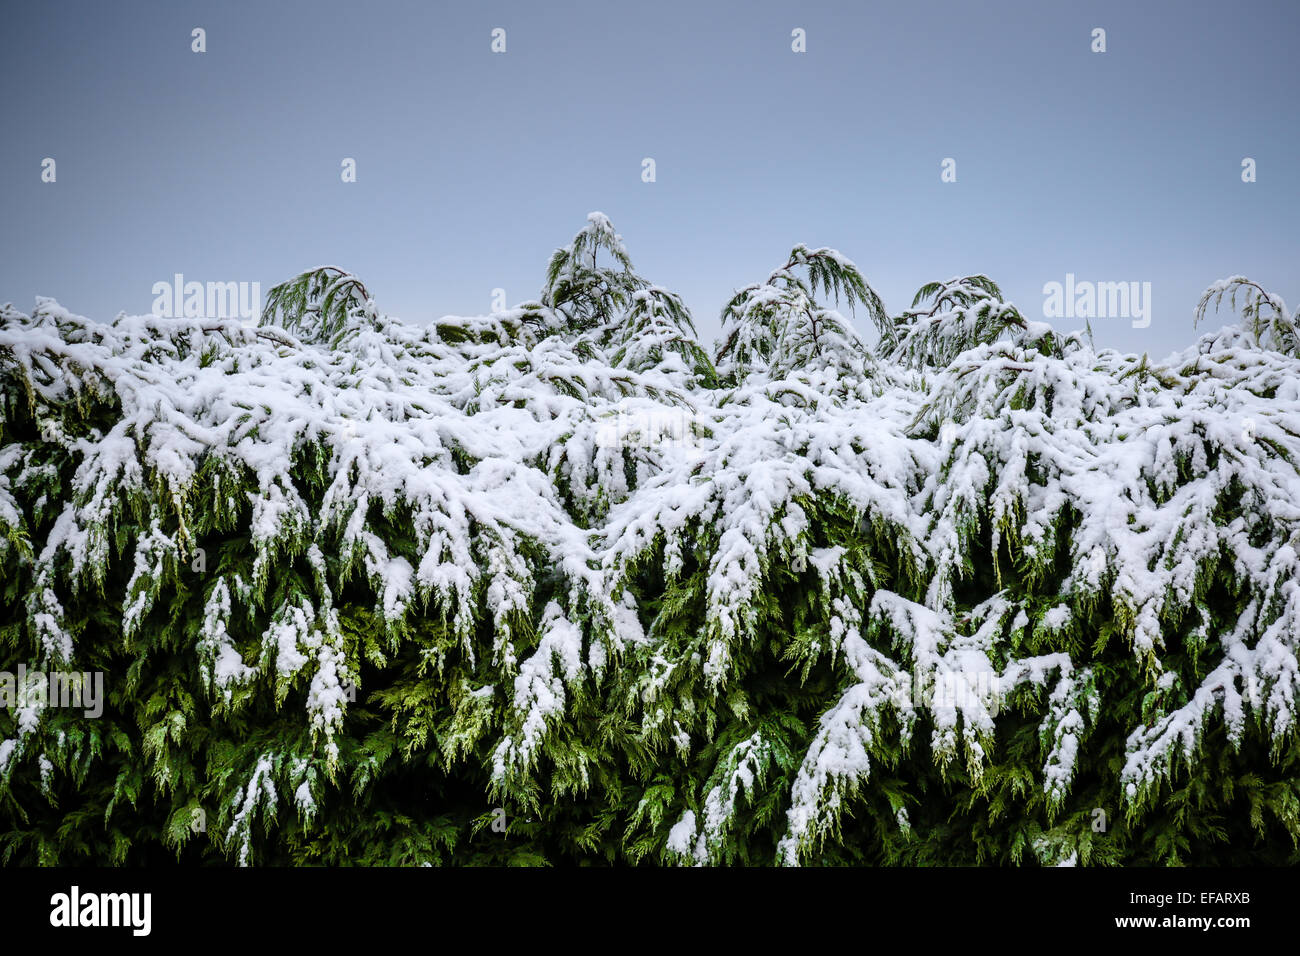 The top of a conifer hedge covered in recent snowfall against a blue sky - Stock Image